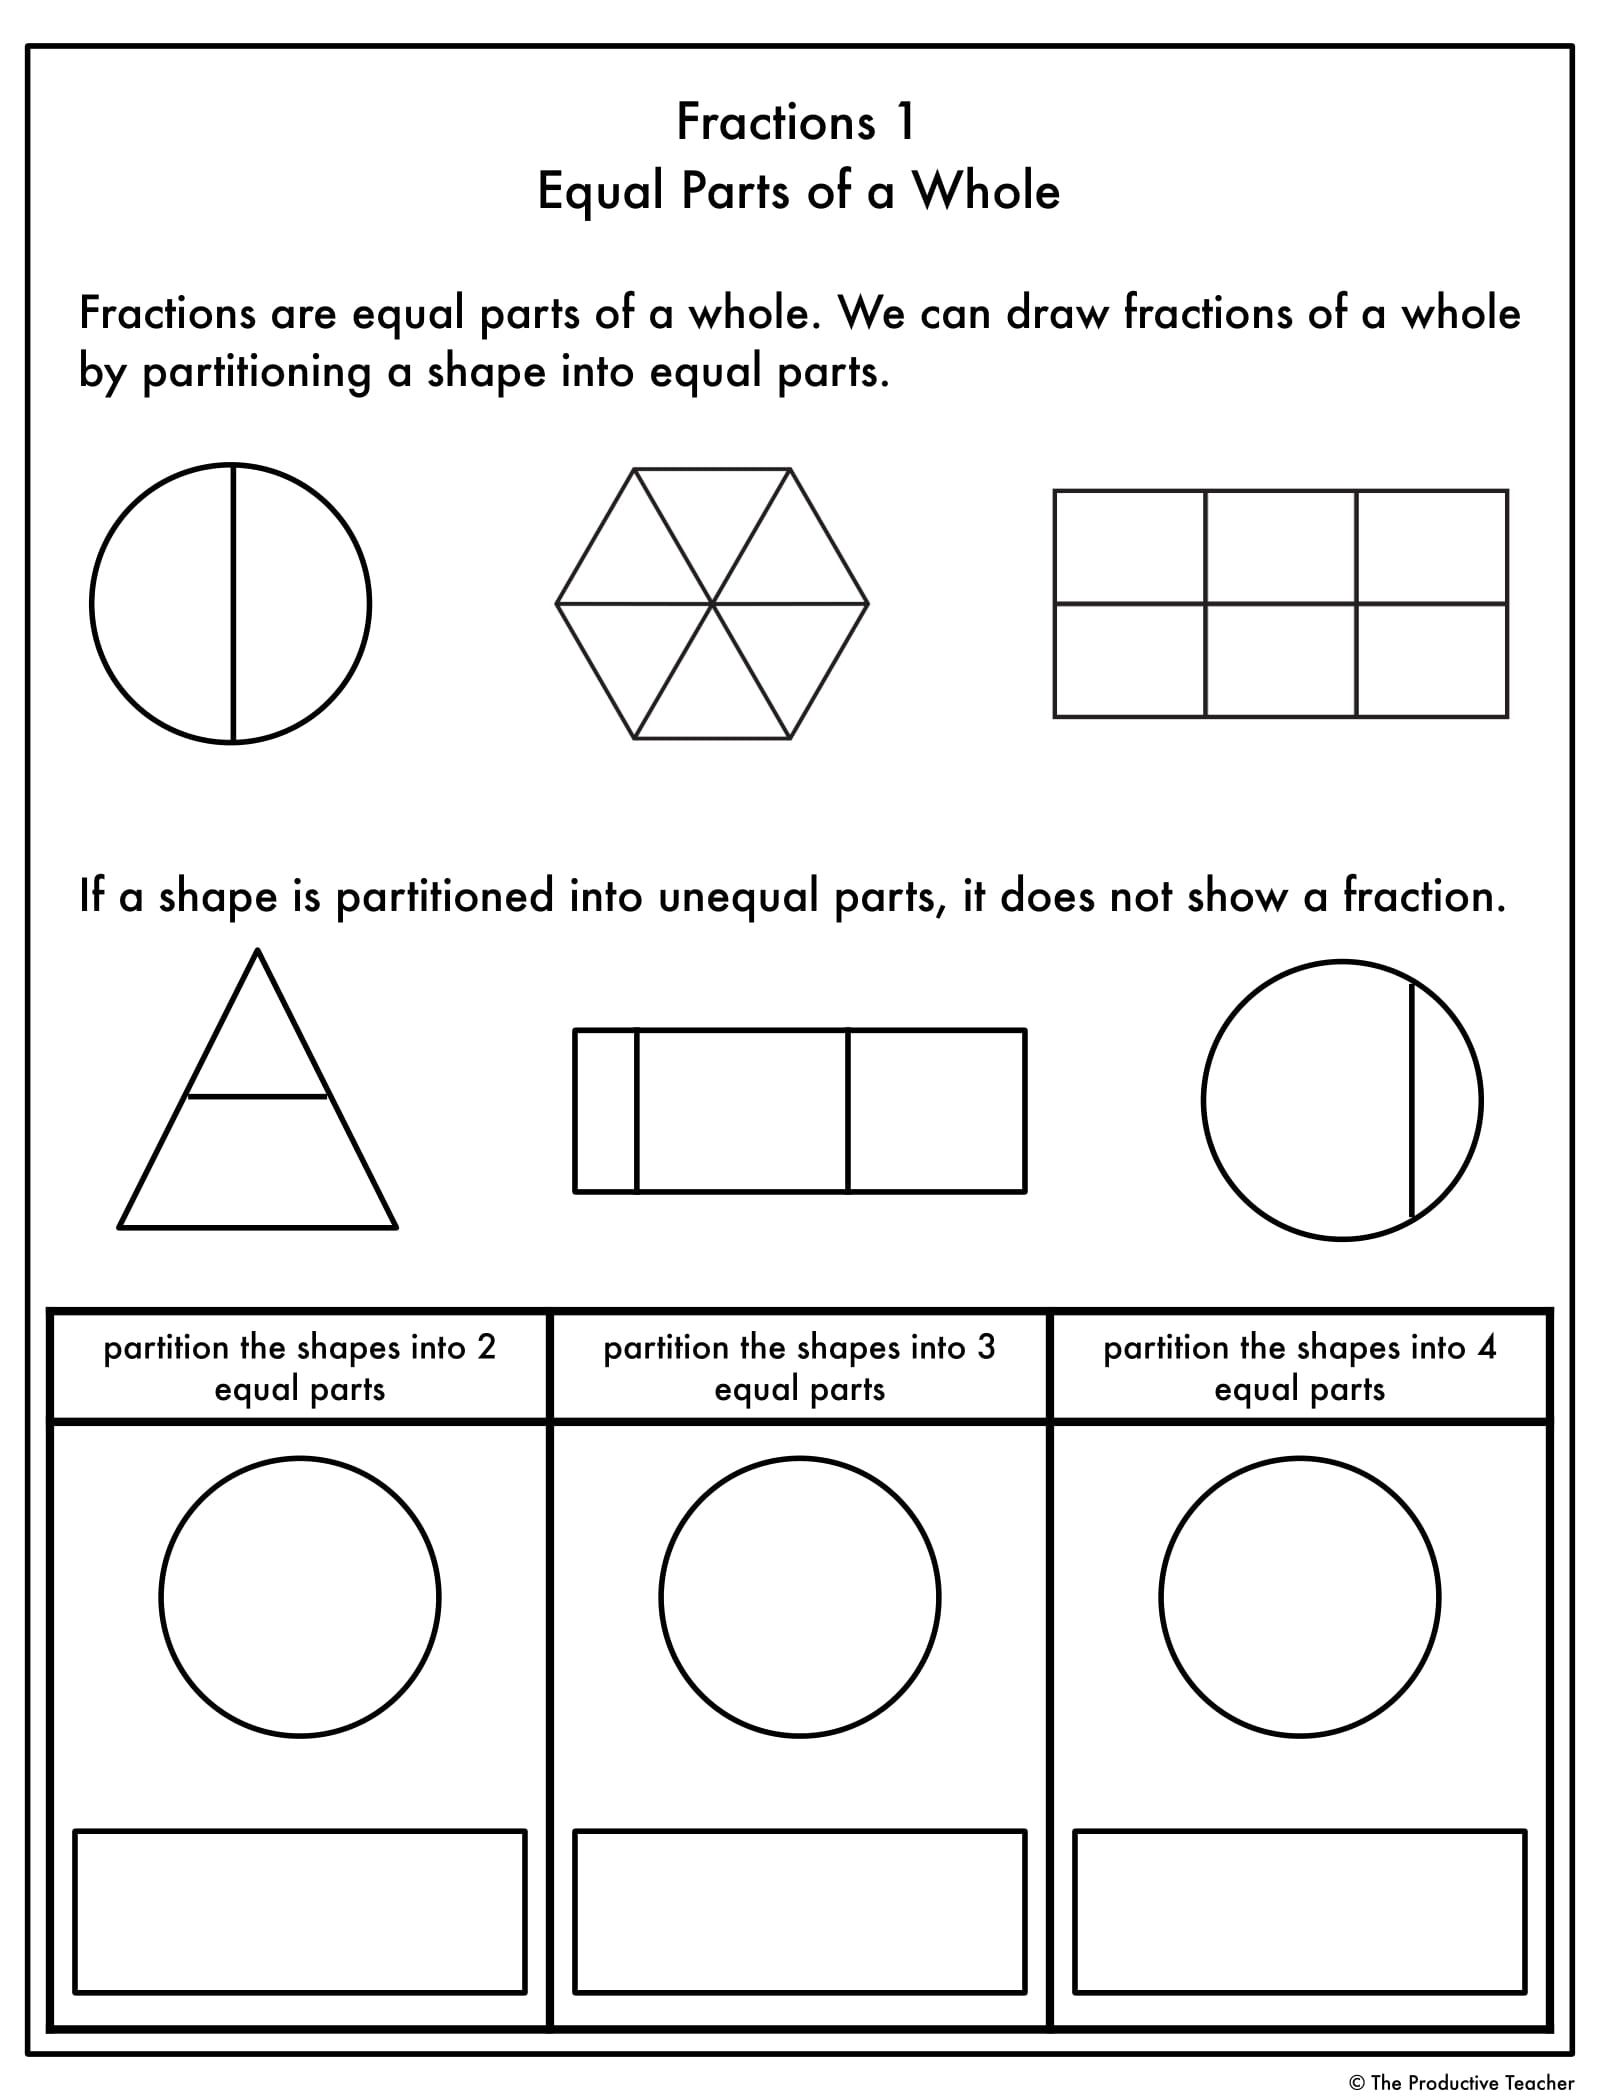 Fractions Progression Worksheets In